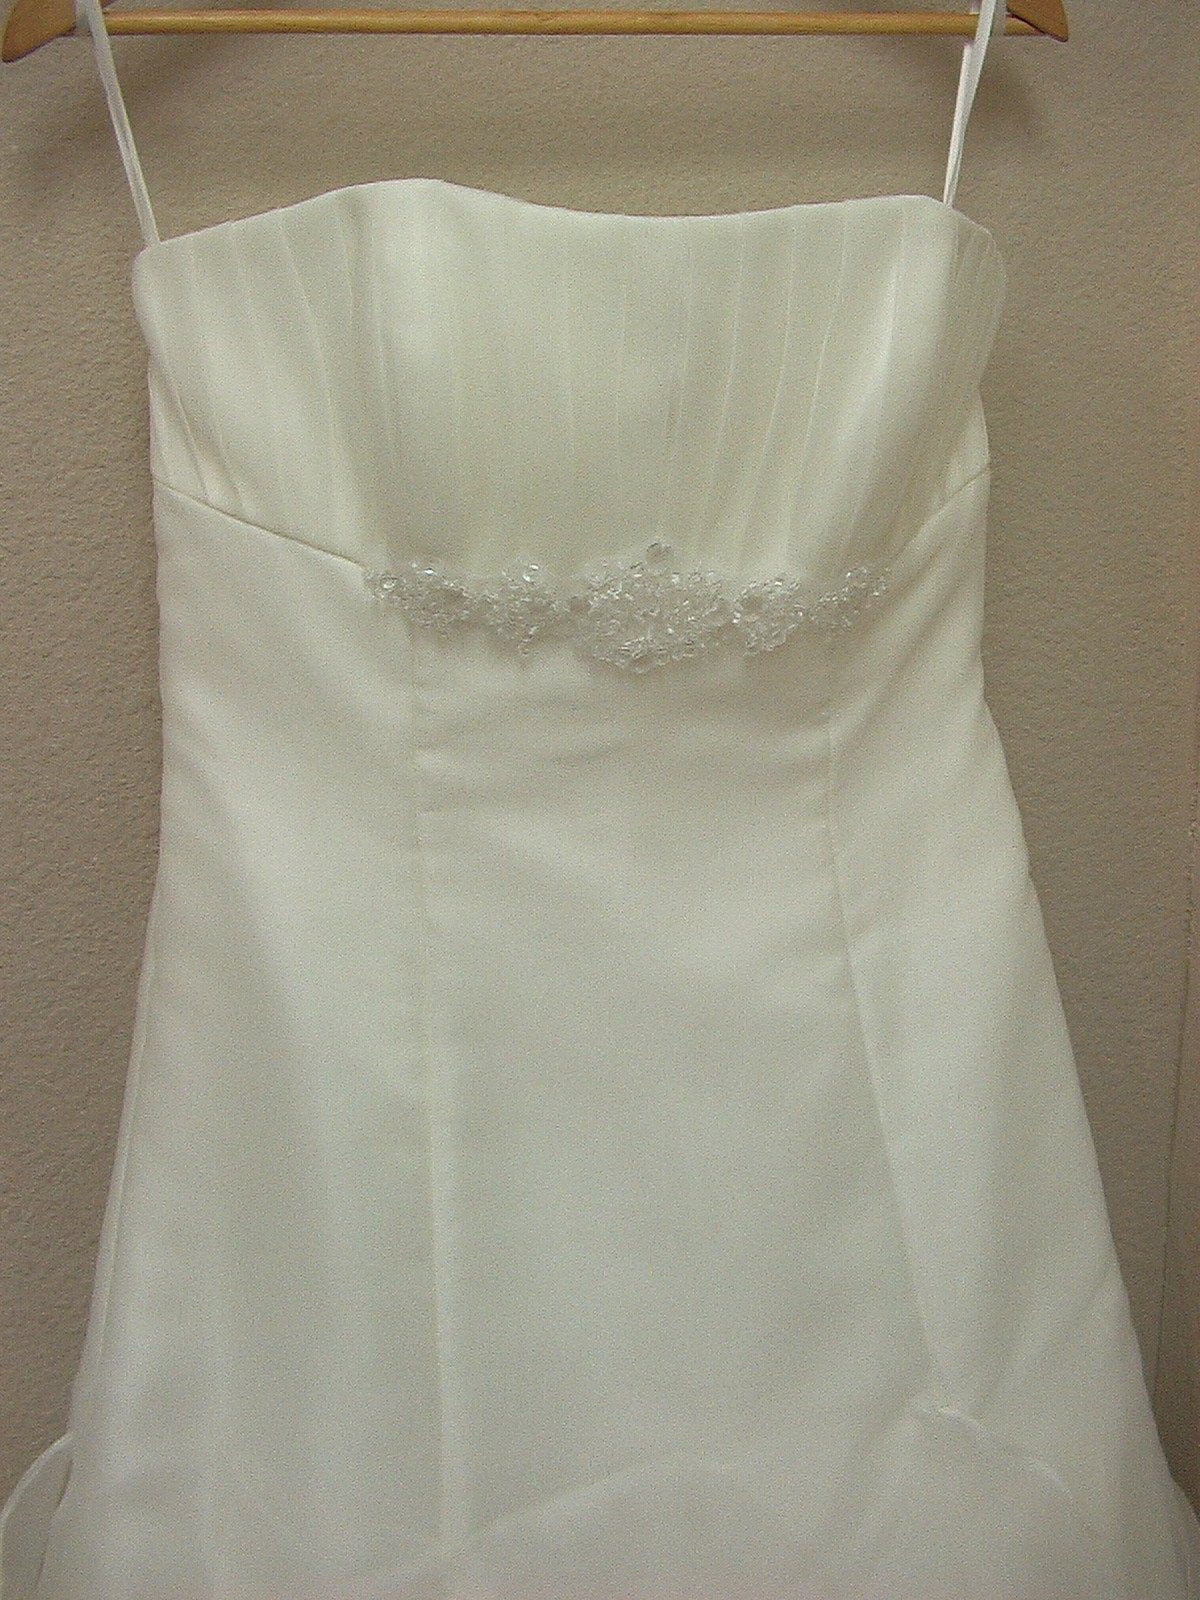 White One 6201 by Pronovias Off White size 10 In Stock Wedding Dress - Tom's Bridal